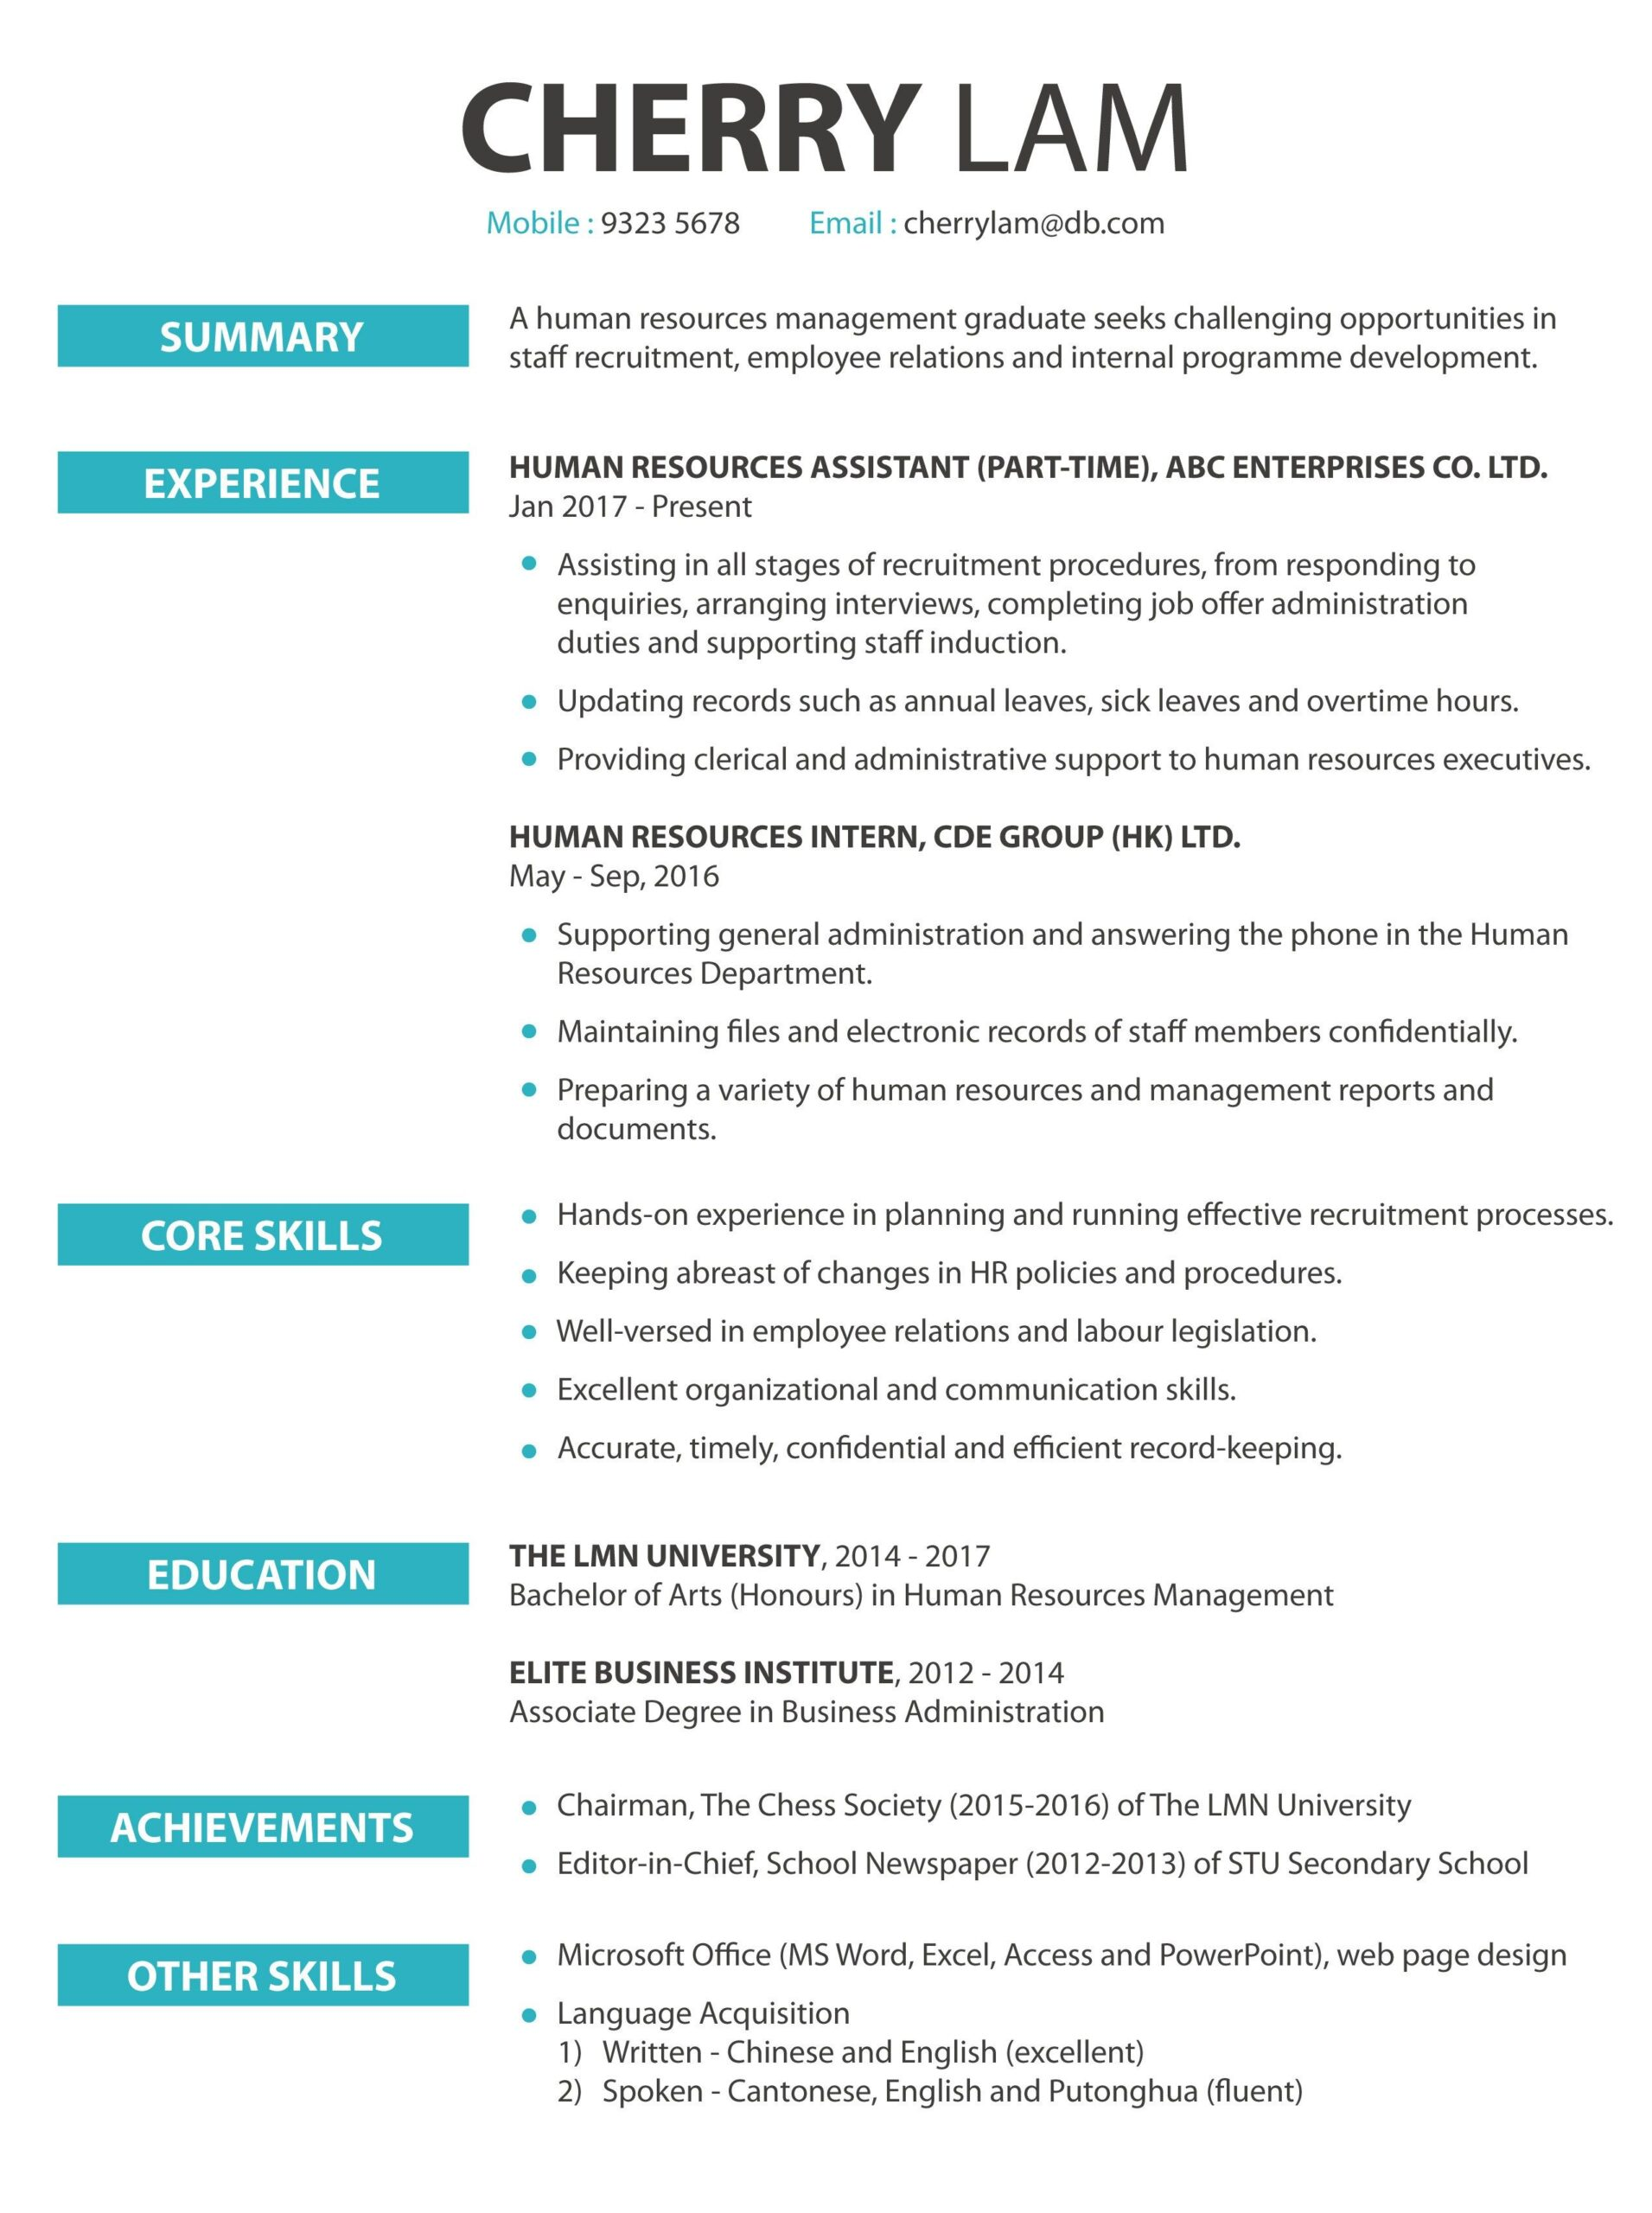 cover letter sample jobsdb resume examples employee relations chief of staff job upload Resume Chief Of Staff Job Resume